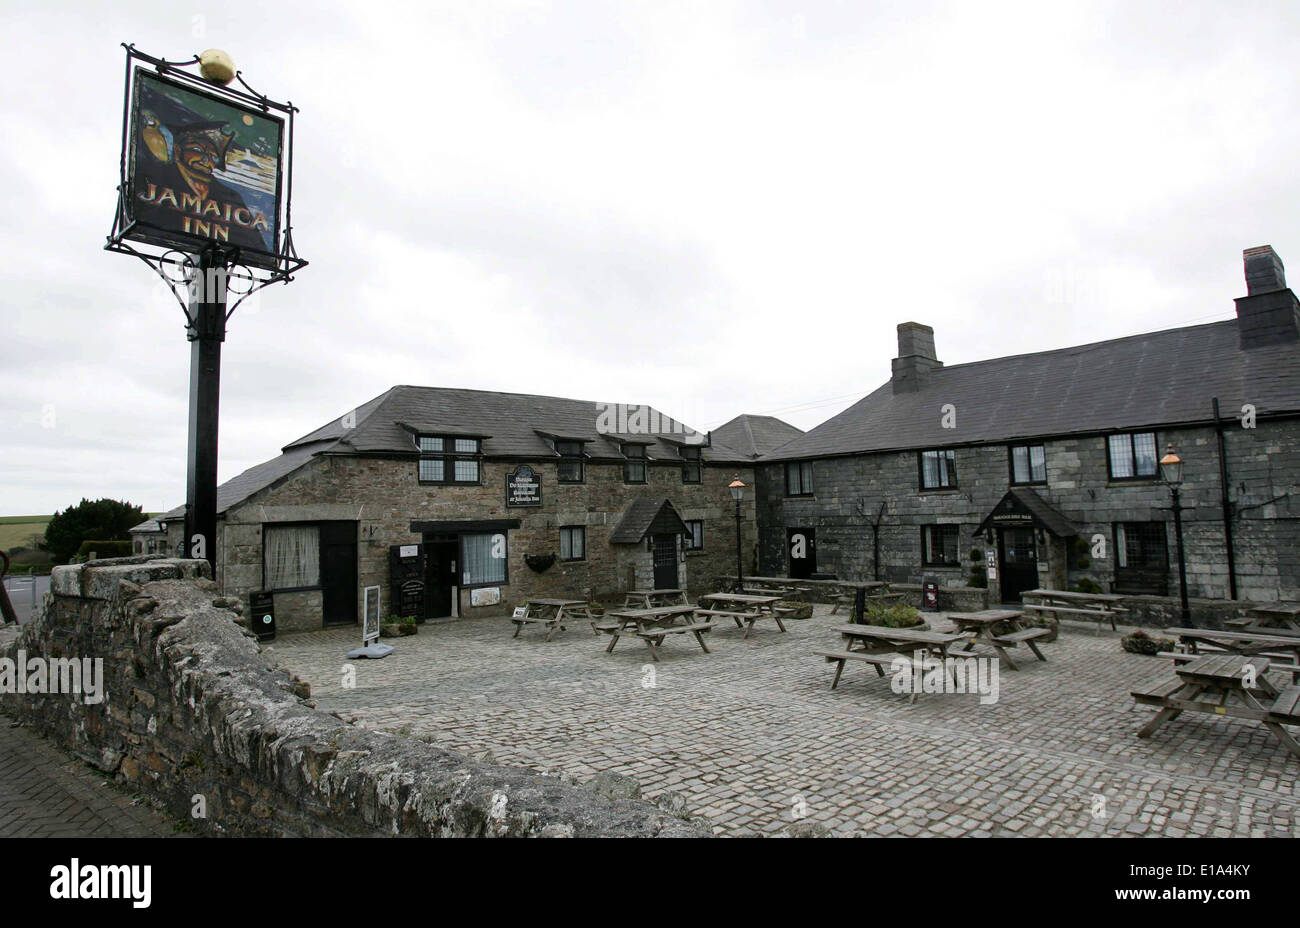 The historic 'Jamaica Inn' pub made famous by author Daphne du Maurier - Stock Image